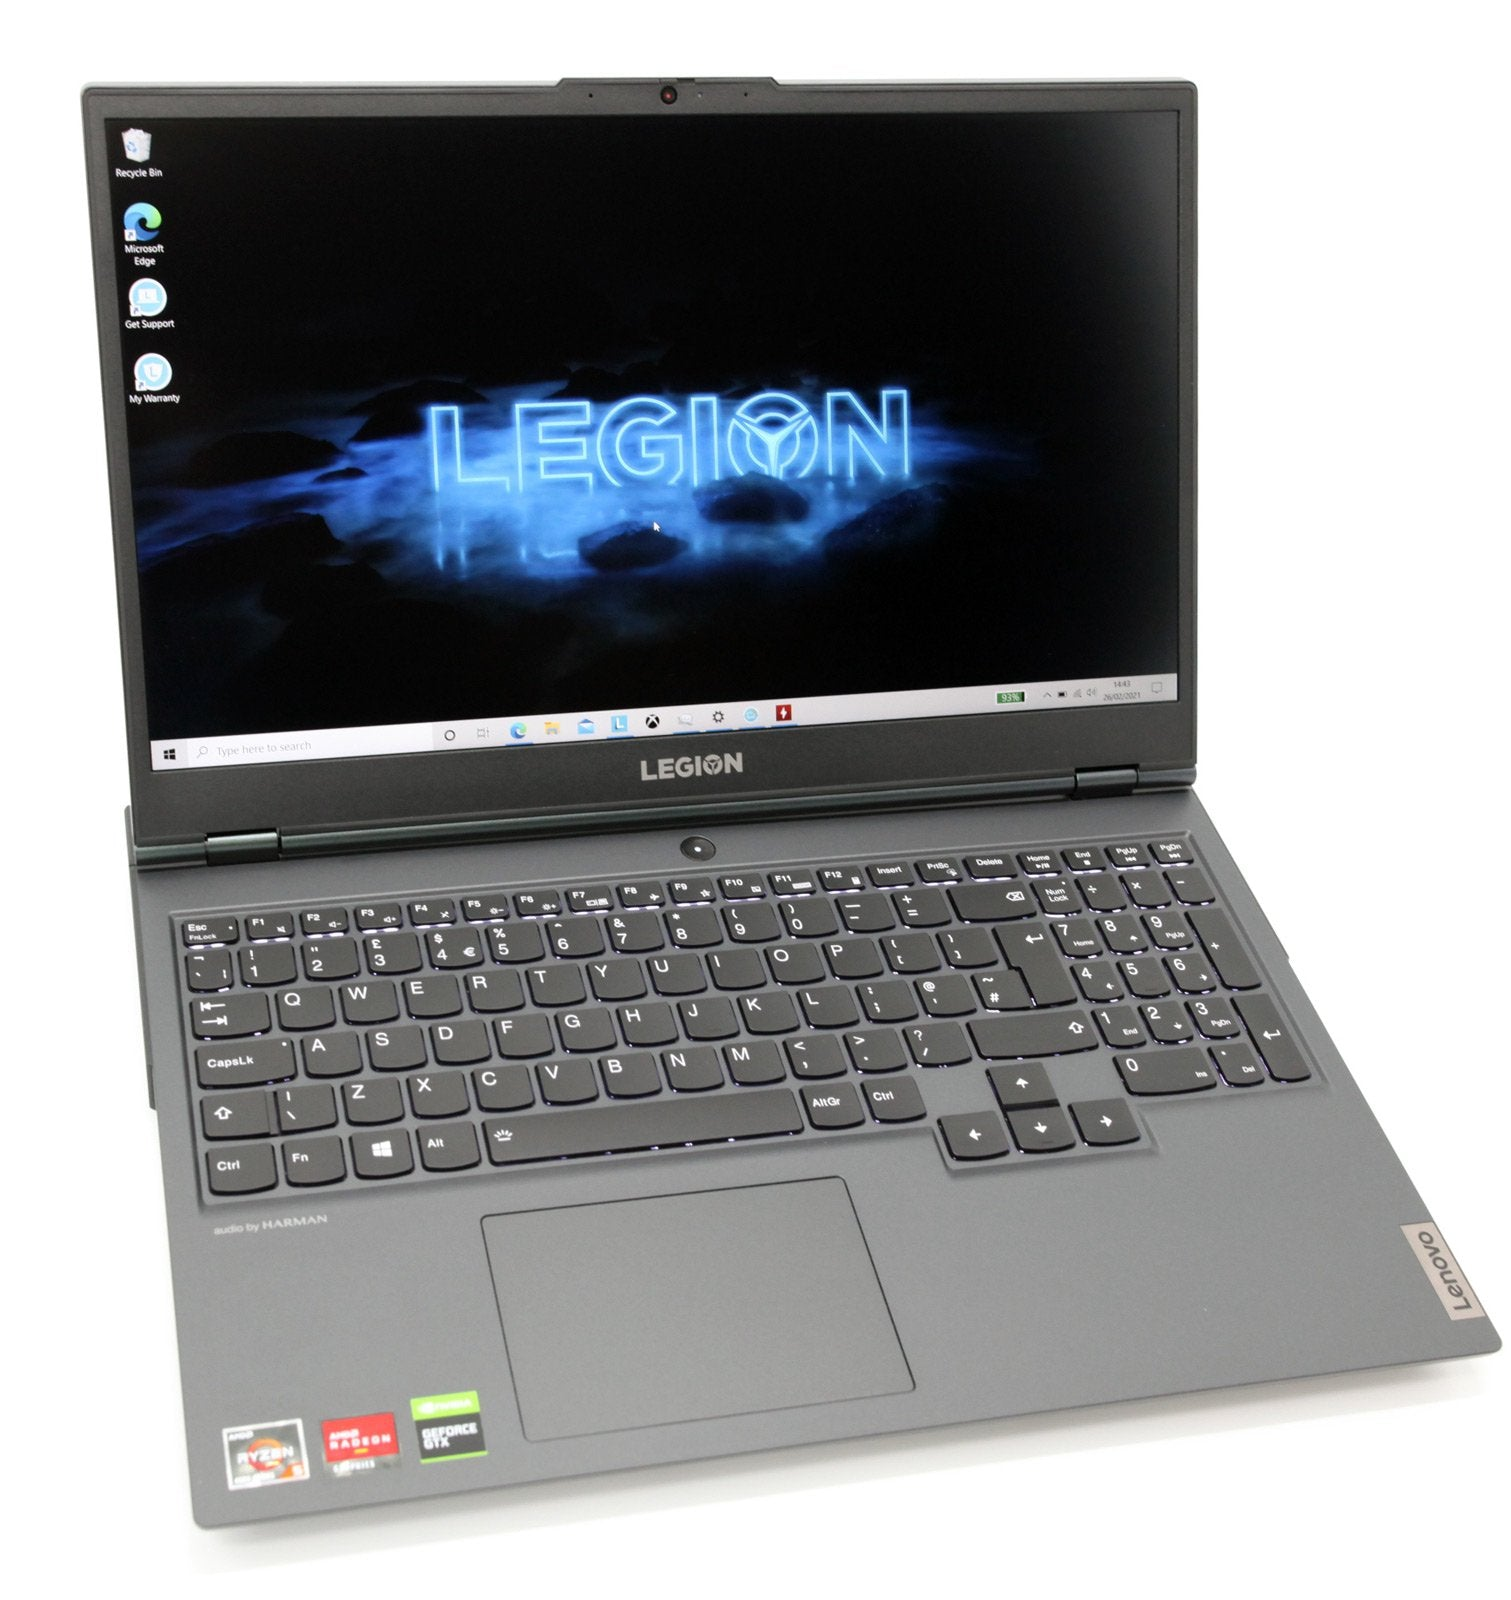 Lenovo Legion 5 Gaming Laptop: Ryzen 5-4600H, 8GB RAM, GTX 1650, 256GB, Warranty - CruiseTech